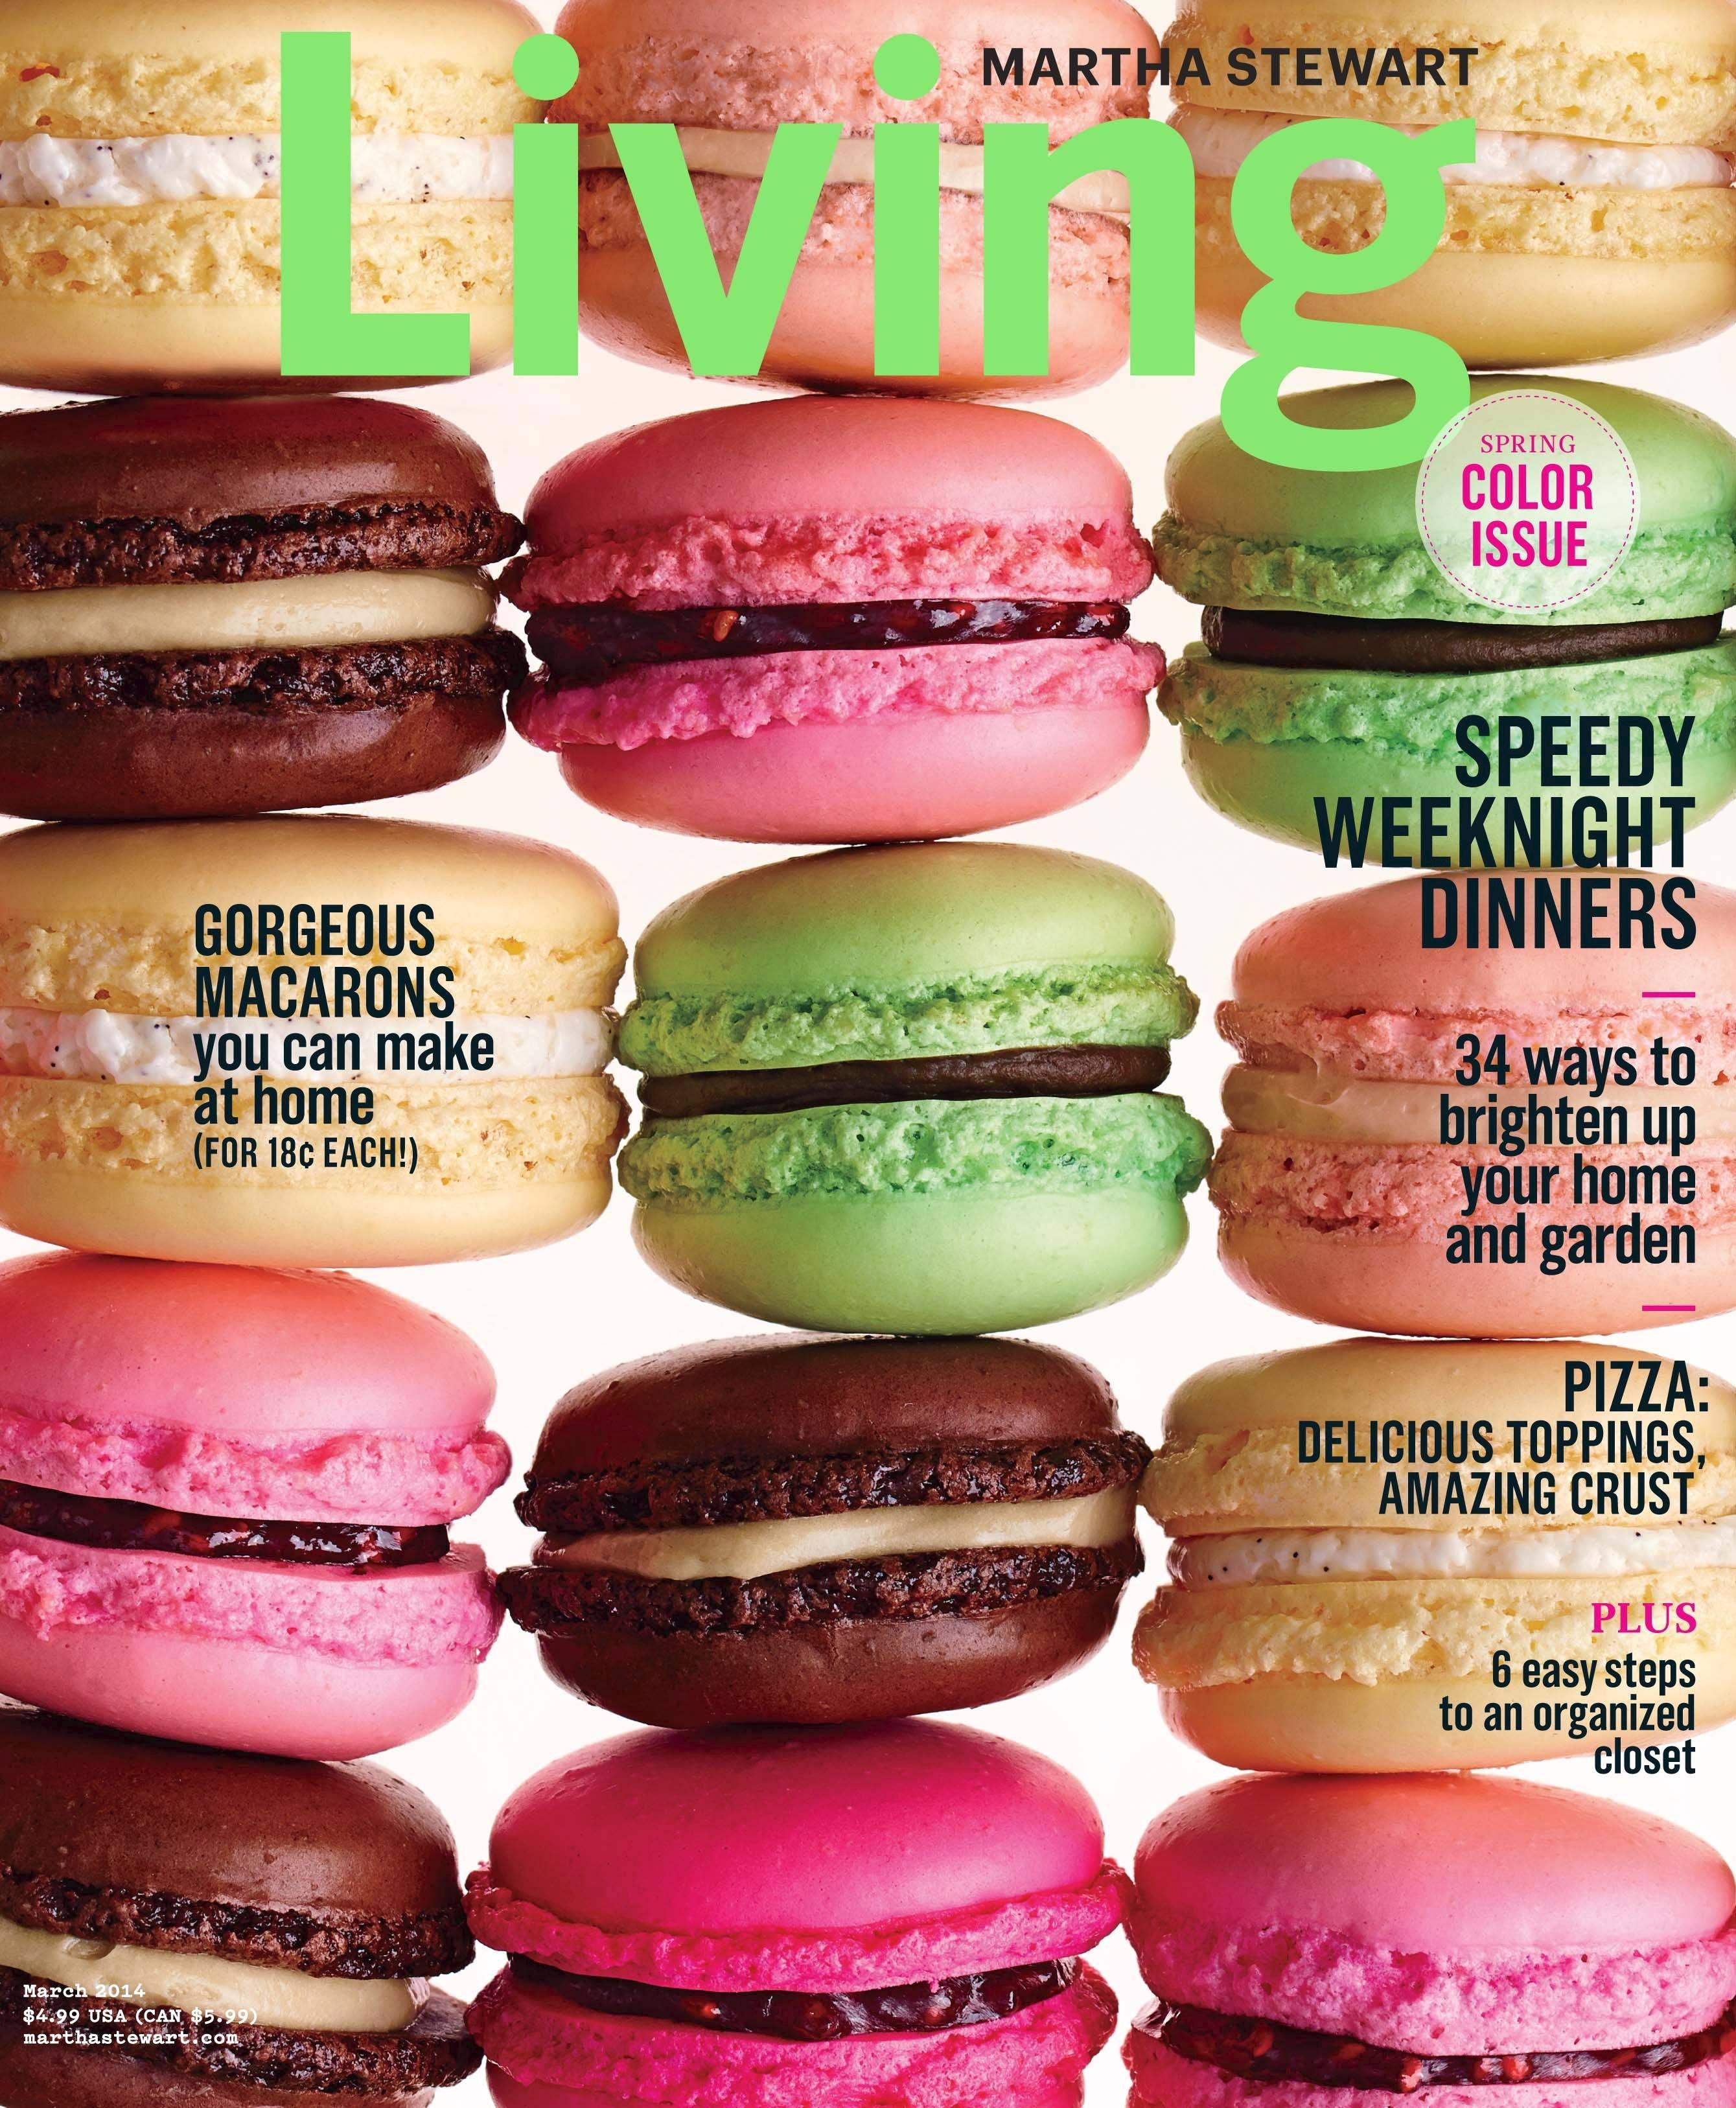 Macarons played the role of cover girl on the March 2014 issue of Martha Stewart Living.